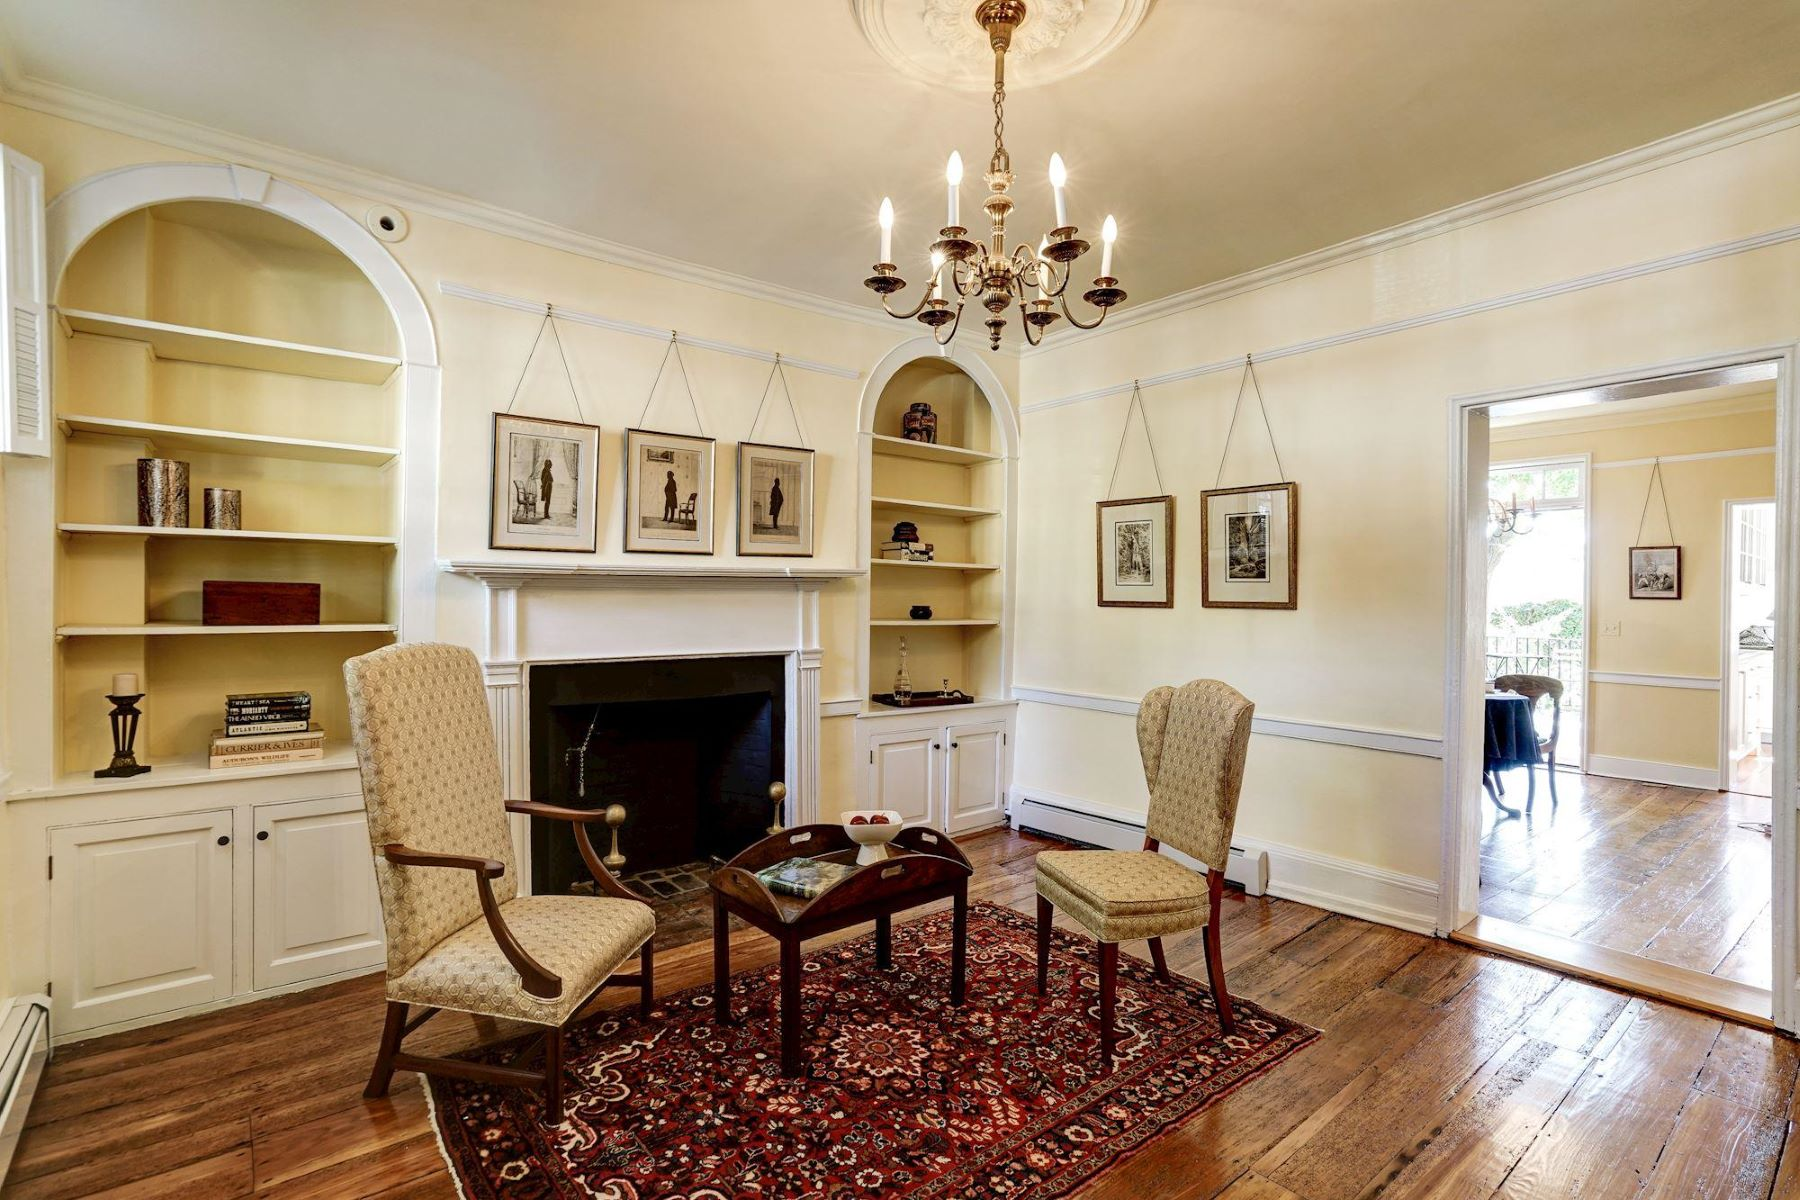 Townhouse for Sale at 1110 Prince St 1110 Prince St Alexandria, Virginia 22314 United States